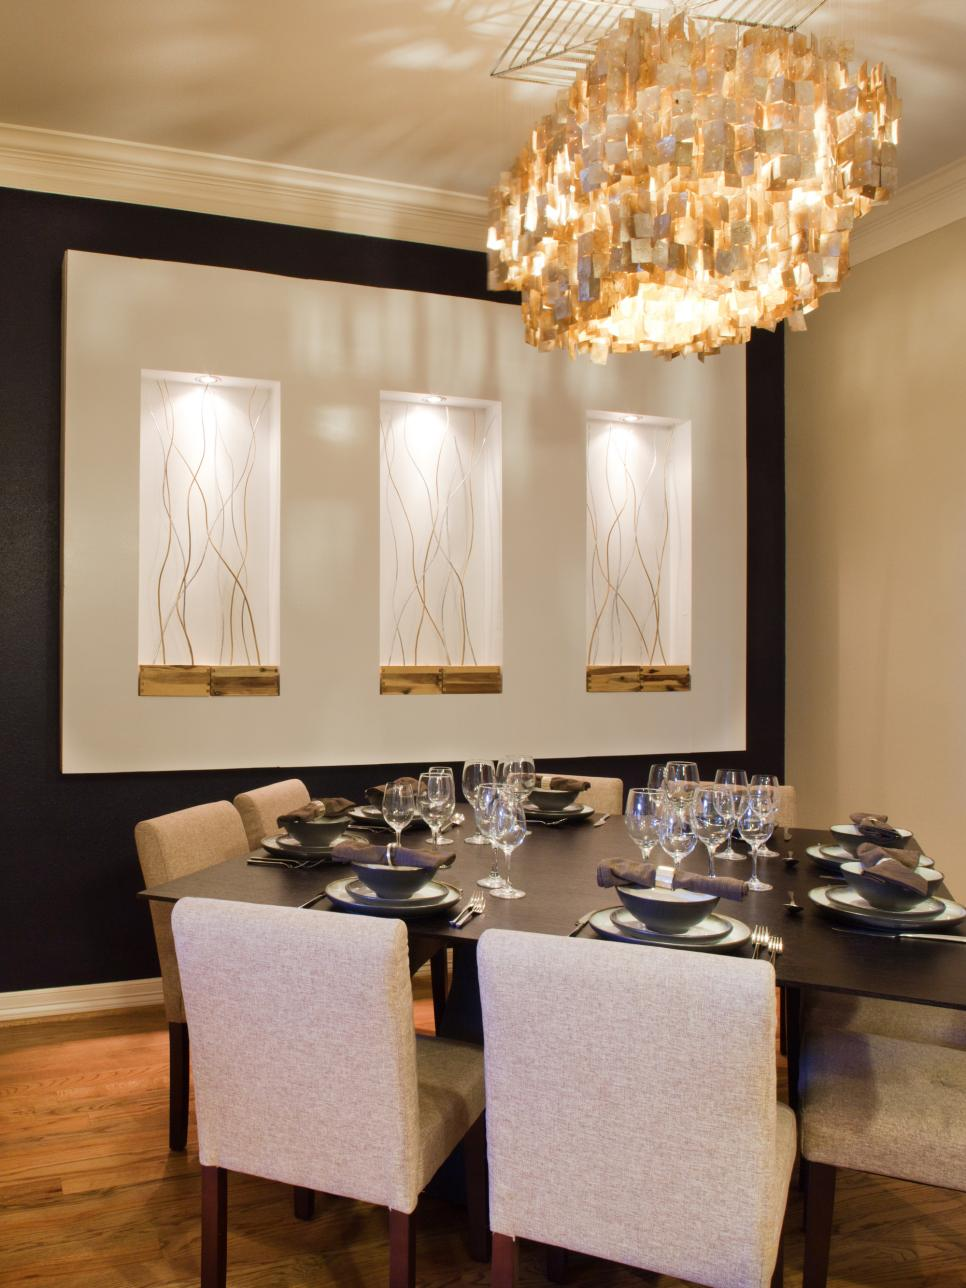 15 dining room decorating ideas hgtv for 15 x 11 living room